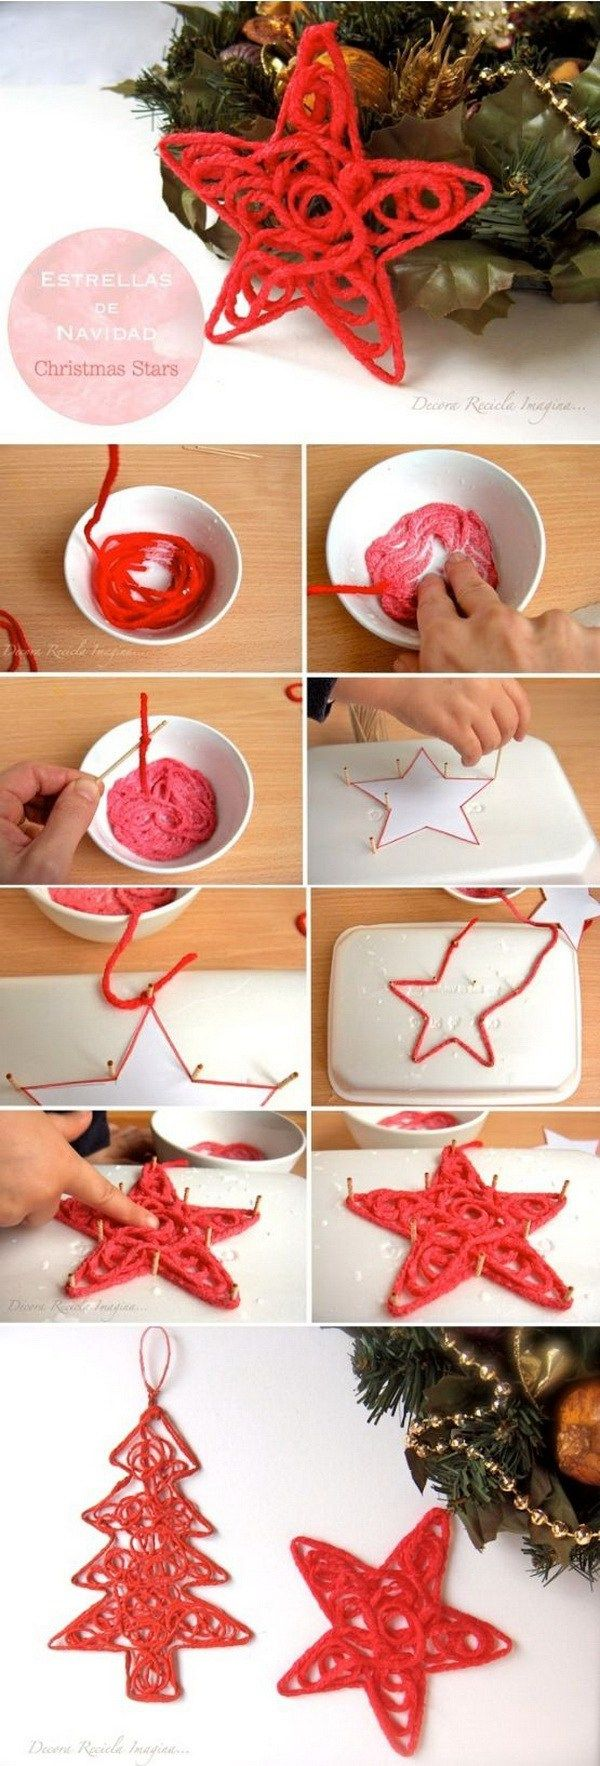 Christmas Star Ornaments. You can whip up a bunch of these festive star ornaments in no time to decorate your Christmas tree or use as holiday gilfts to your friends! Easy and Fun DIY Christmas crafts for You and Your Kids to Have Fun.